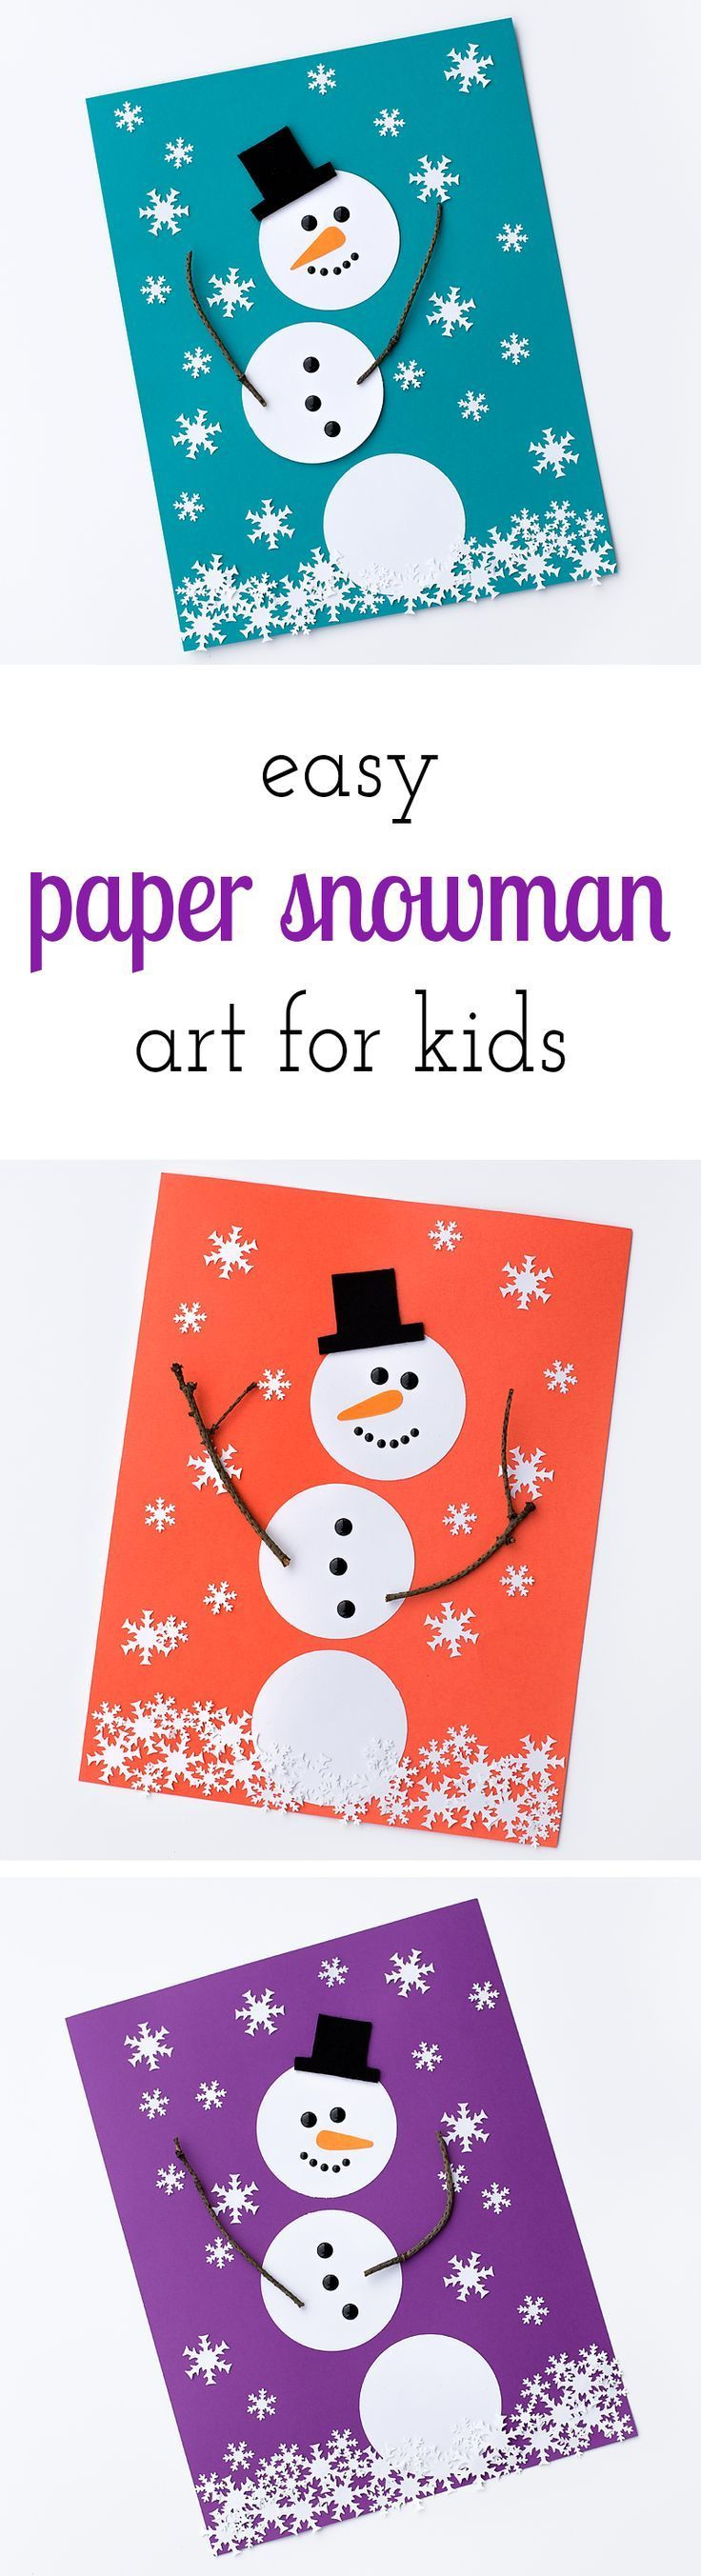 painting crafts ideas 236 best images about winter on snowflakes 2602